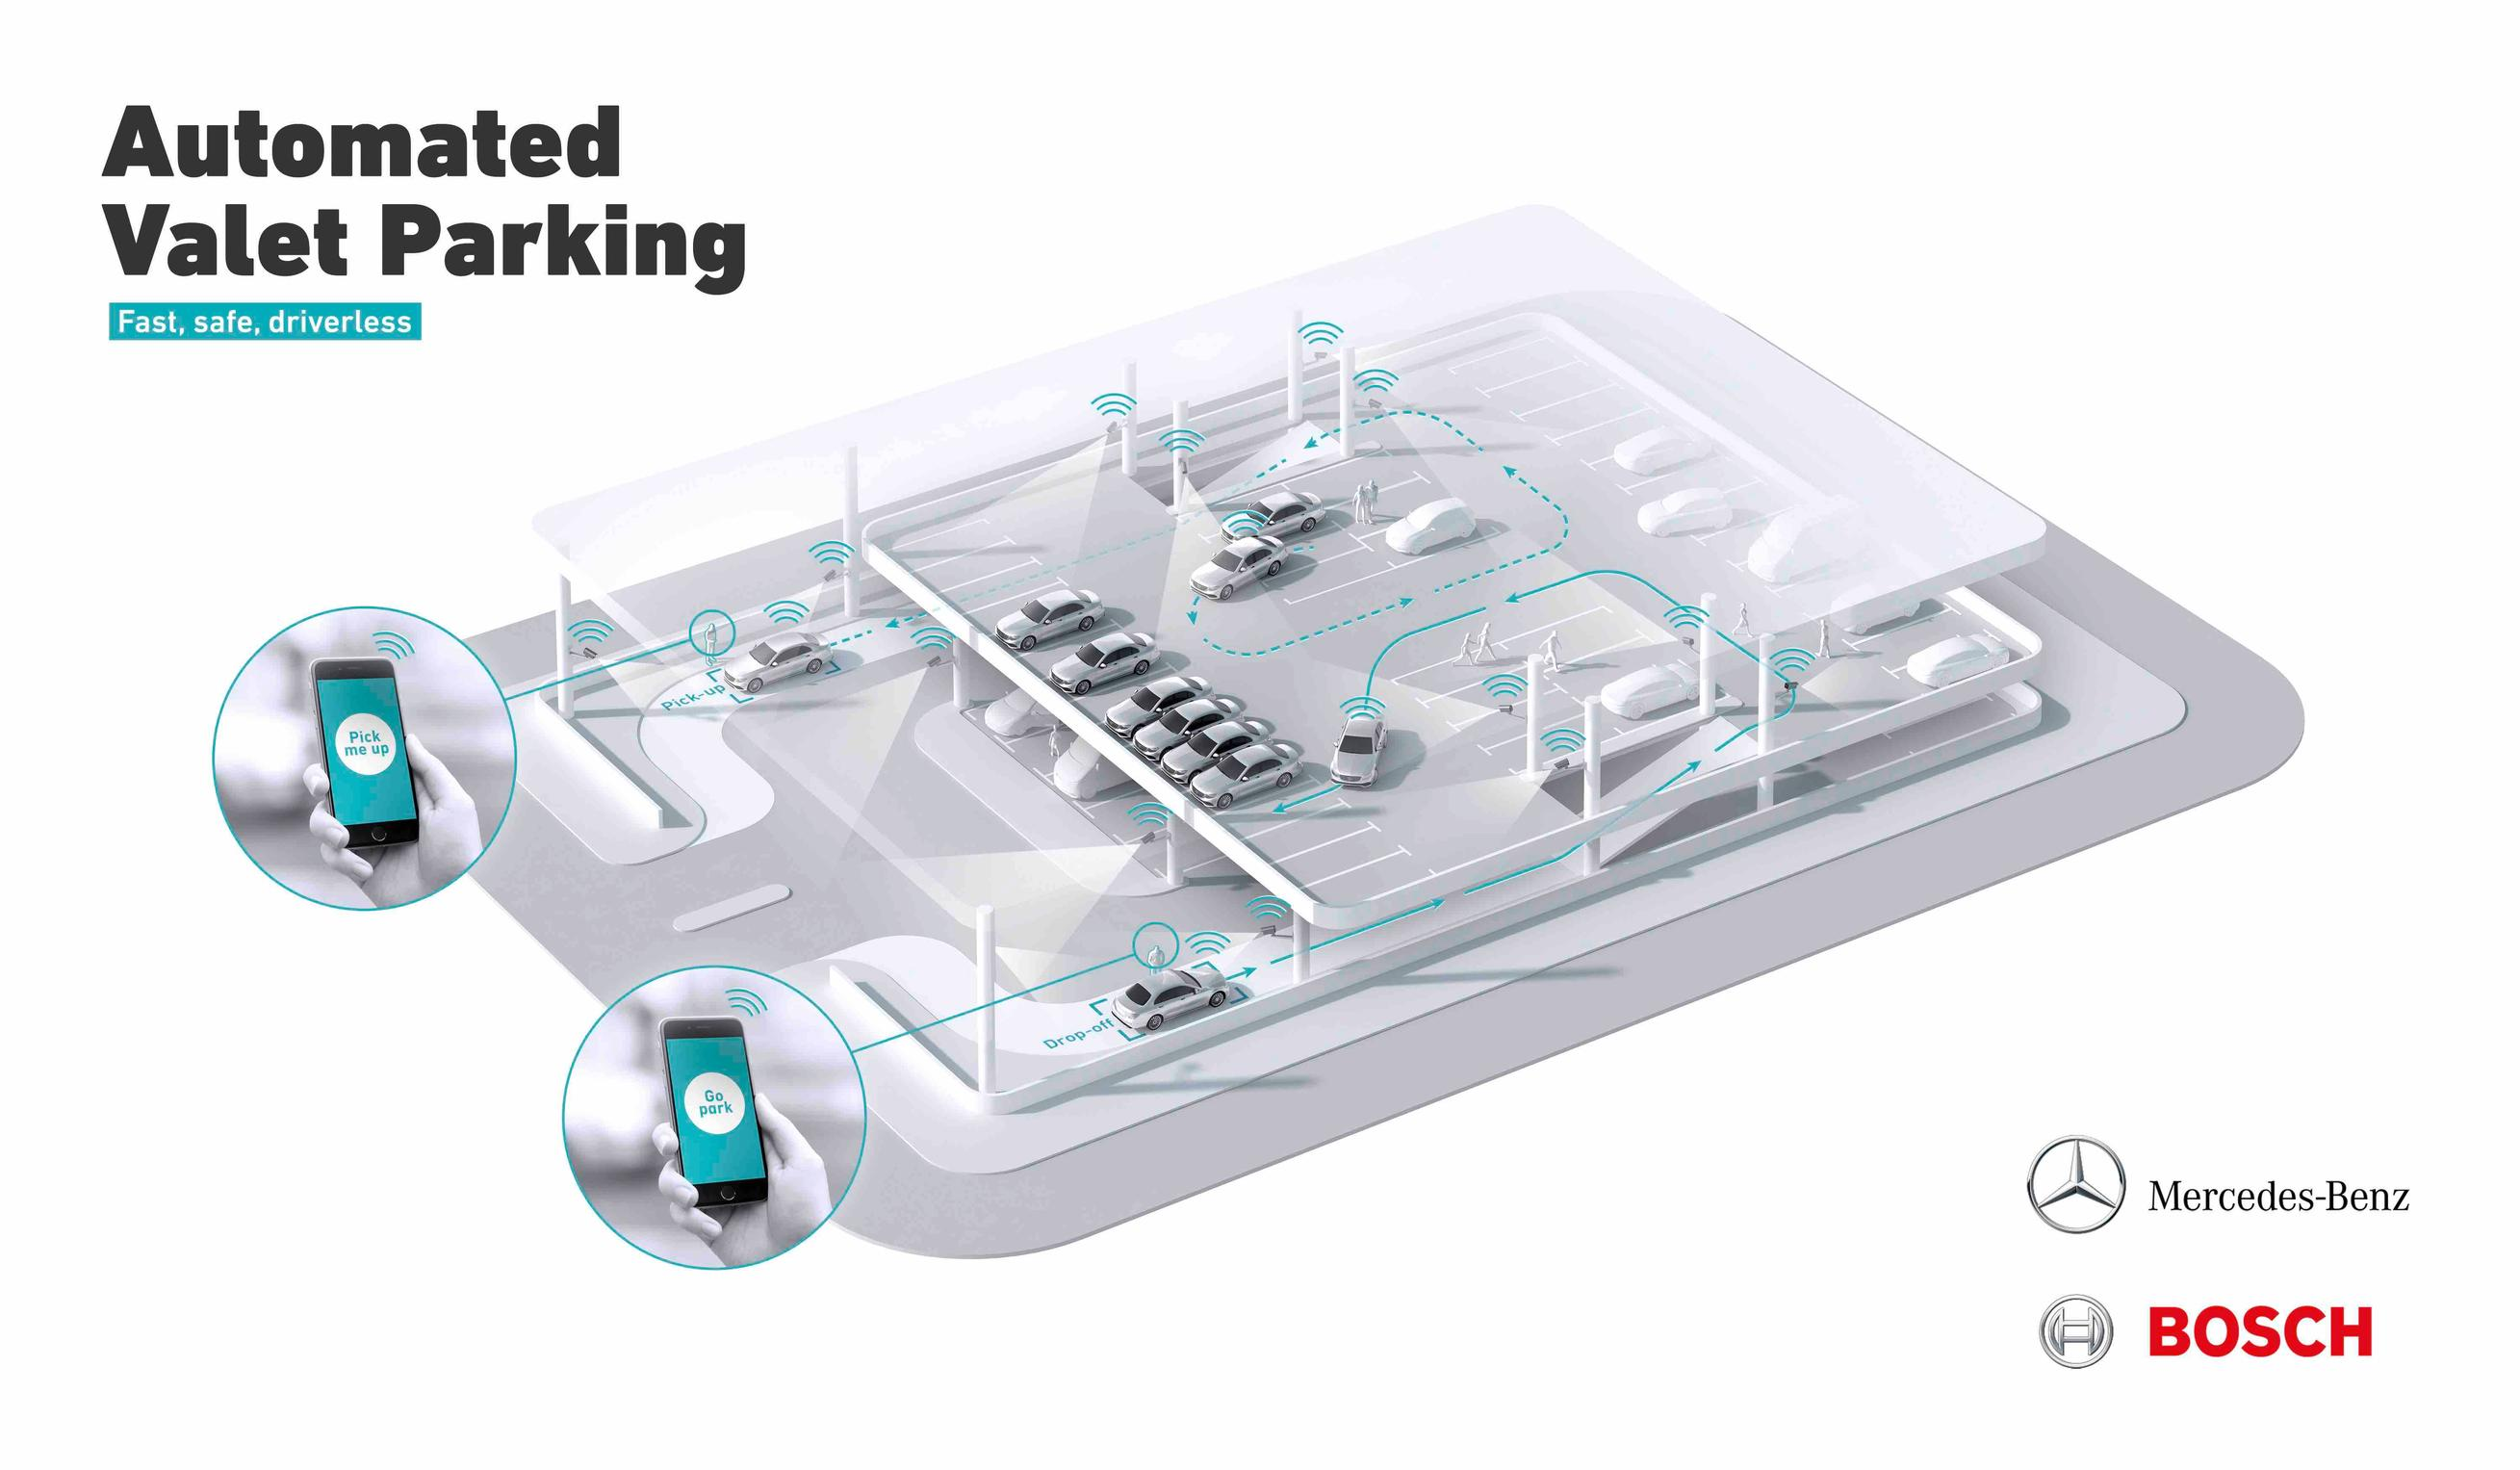 Schematic of the Daimler-Bosch Automated Valet Parking concept